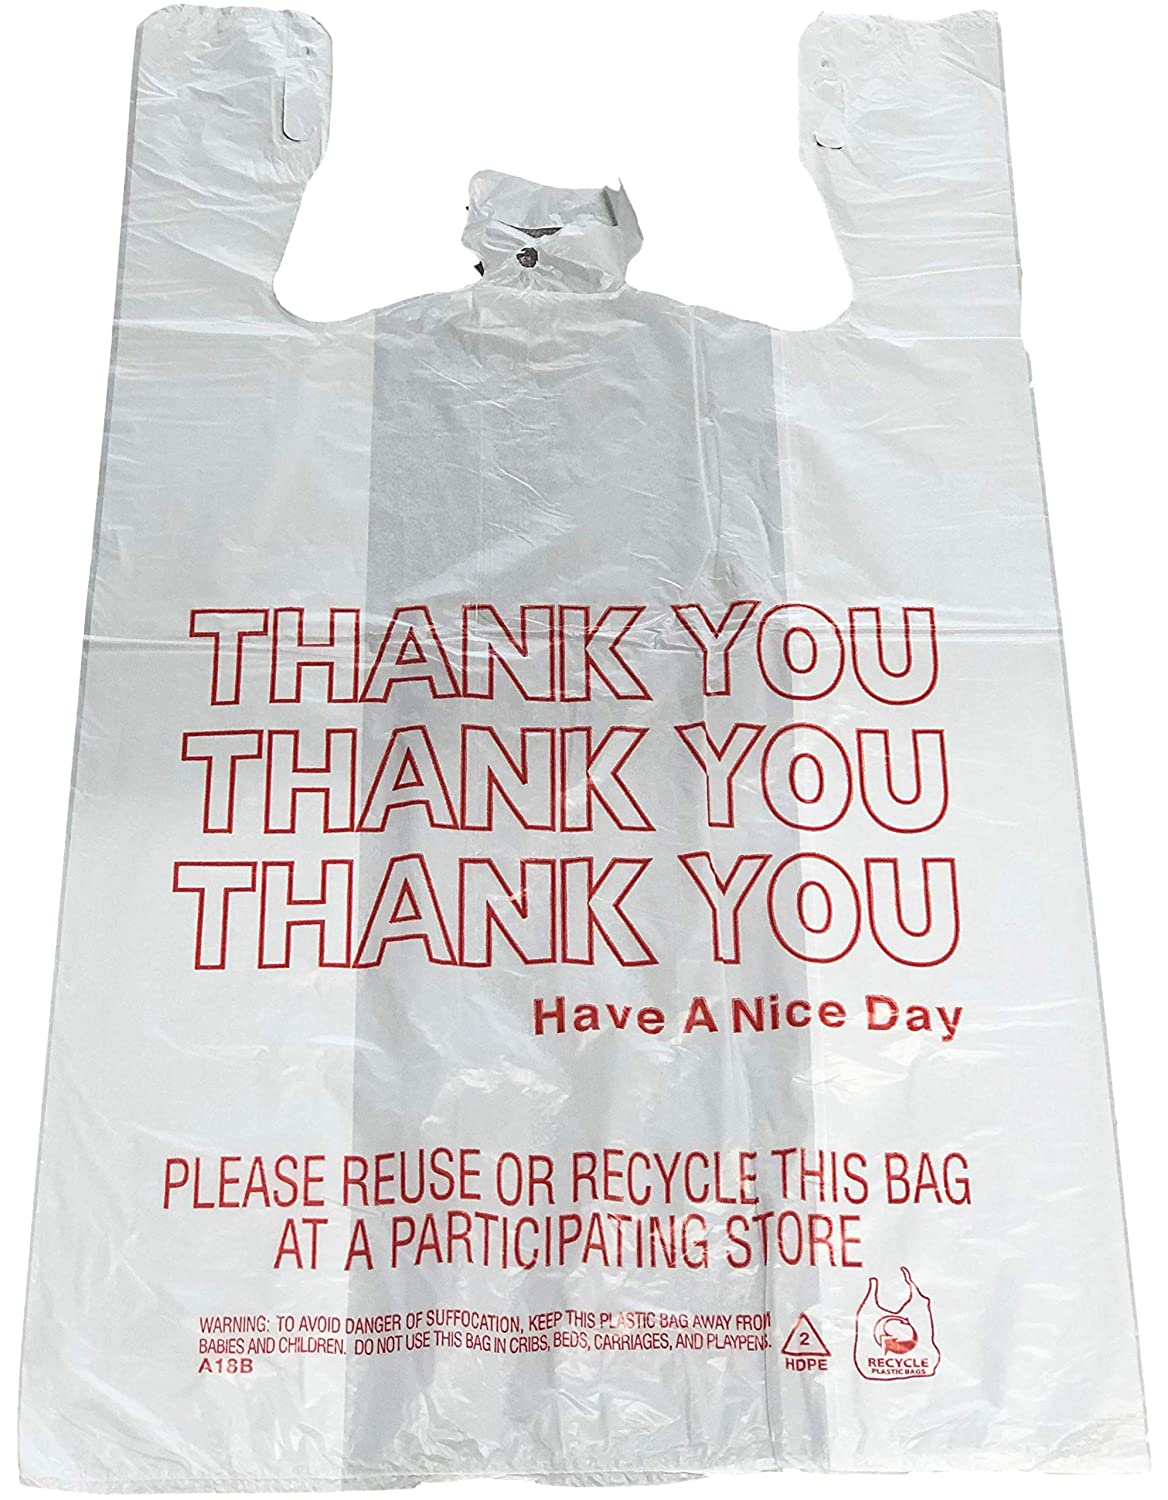 "Reli. Thank You T-Shirt Bags (350 Count), Plastic - Bulk Shopping Bags, Restaurant Bag - T-Shirt Plastic Bags in Bulk - (11.5"" x 6.5"" x 21"") White/Thank You"